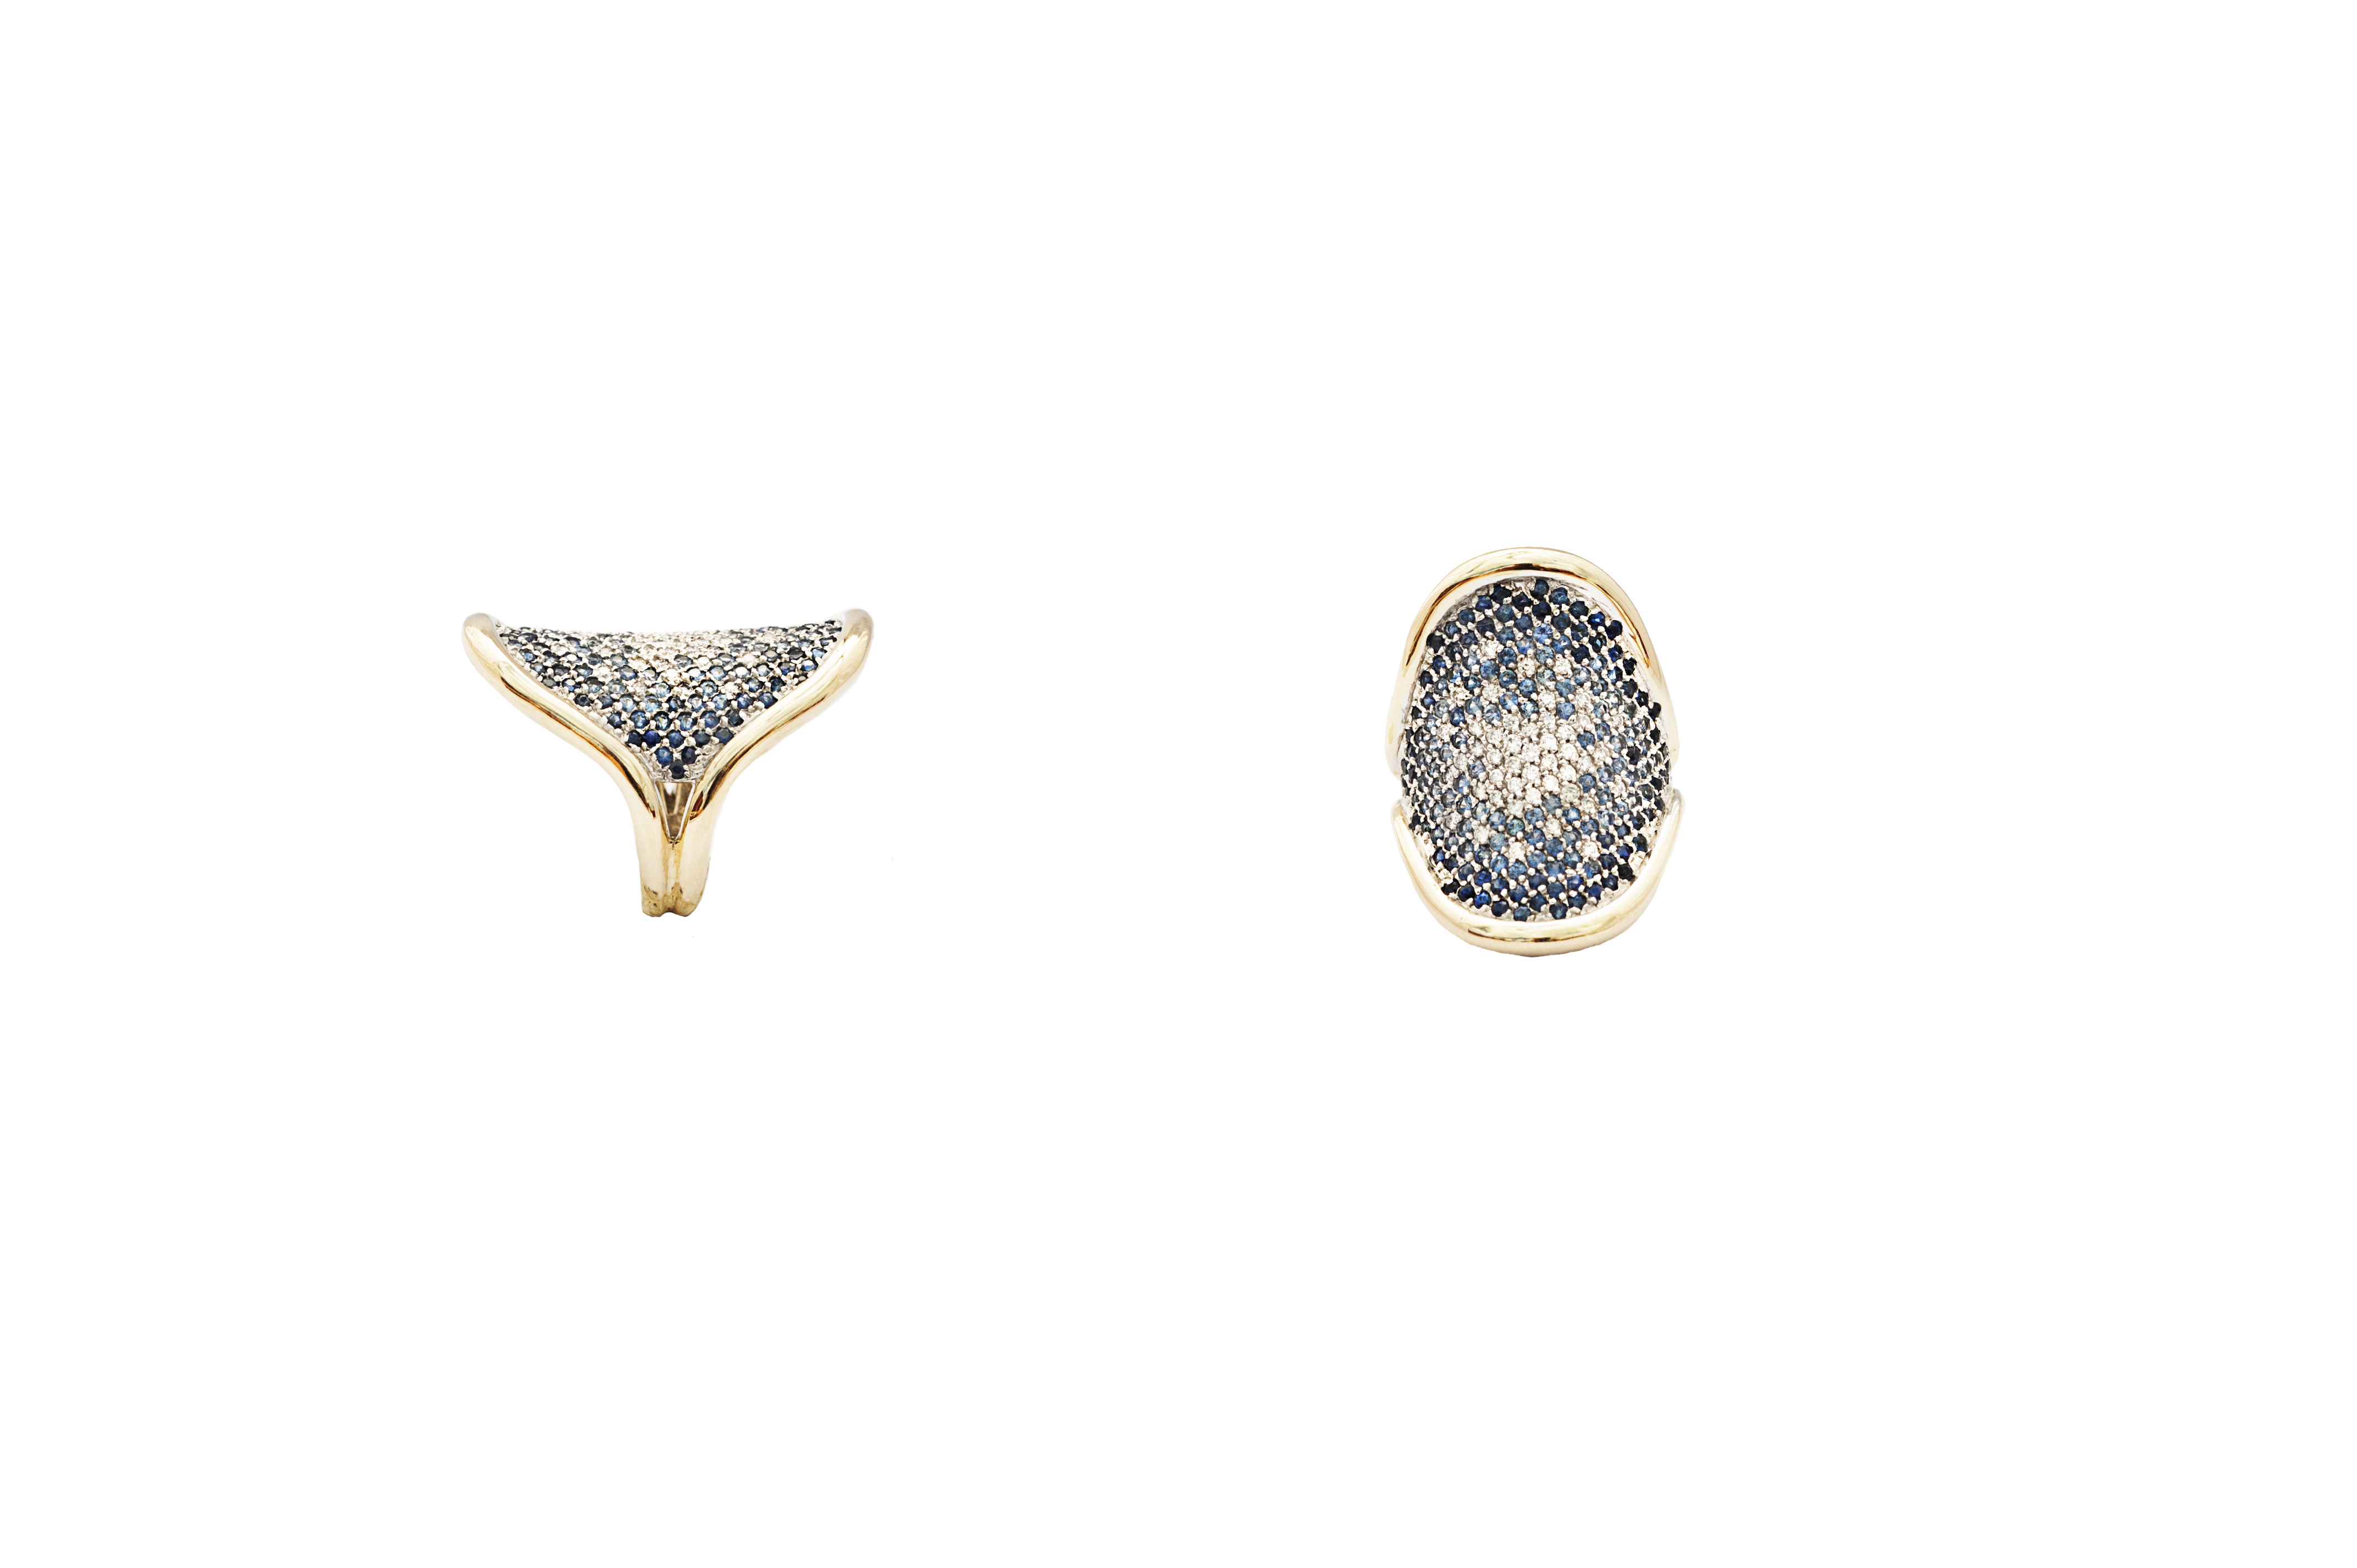 Geometric gold ring with degradé pavé diamonds and sapphires